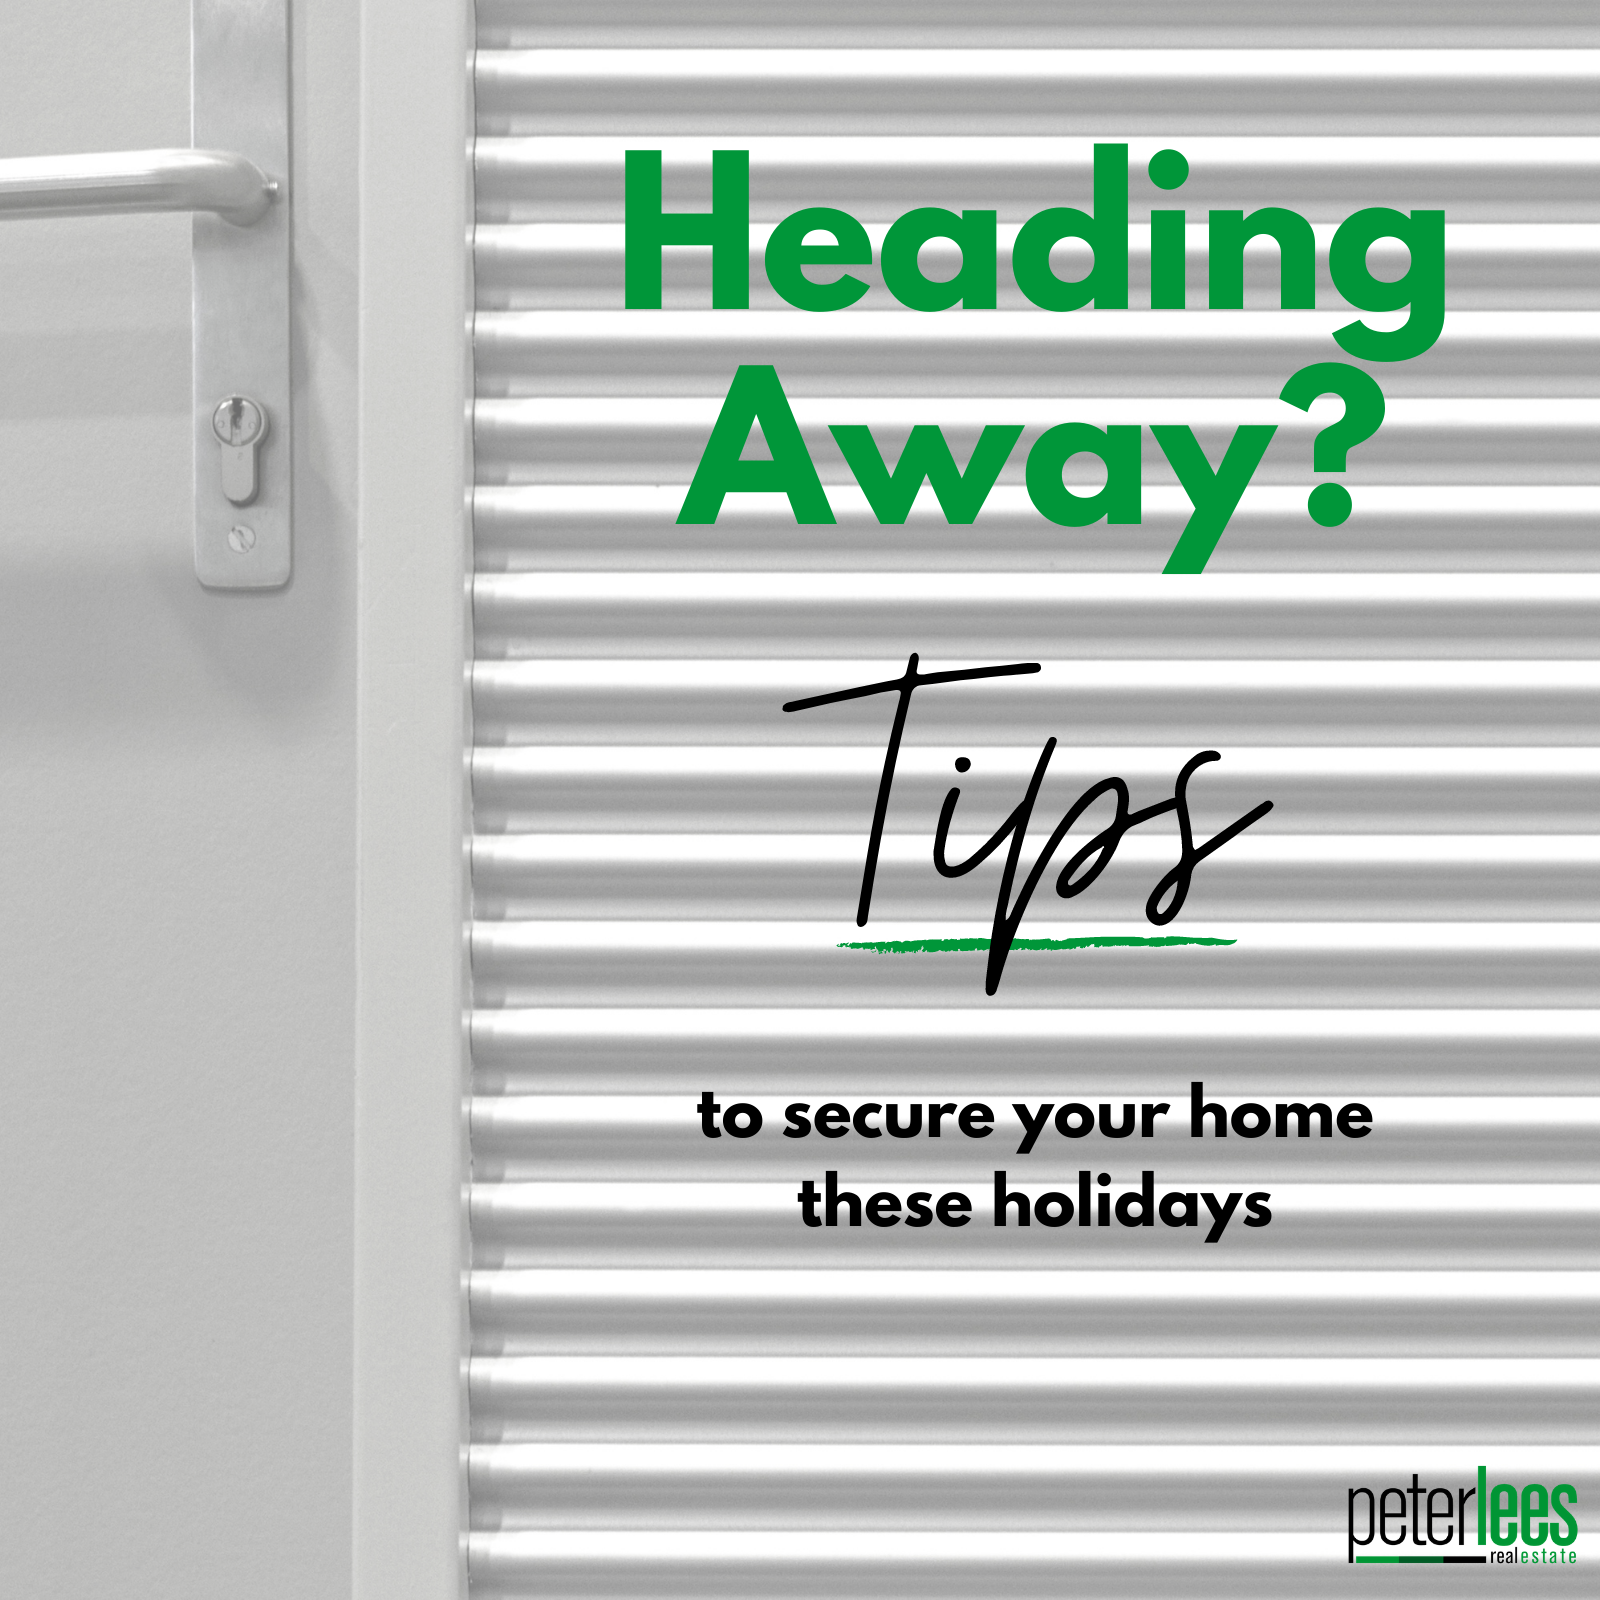 Heading Away these Holidays?